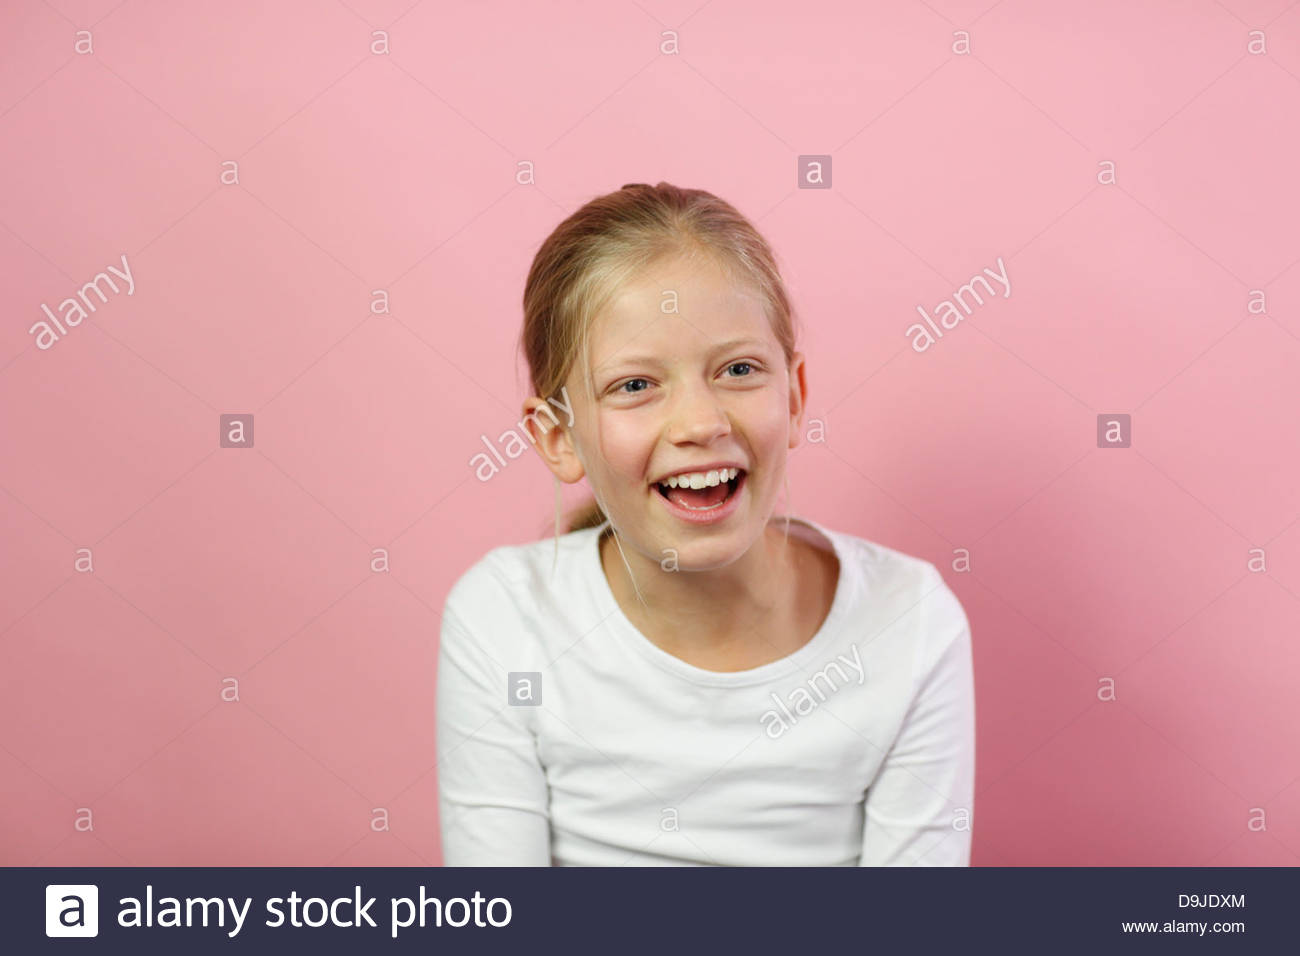 Close-up of a girl smiling - Stock Image